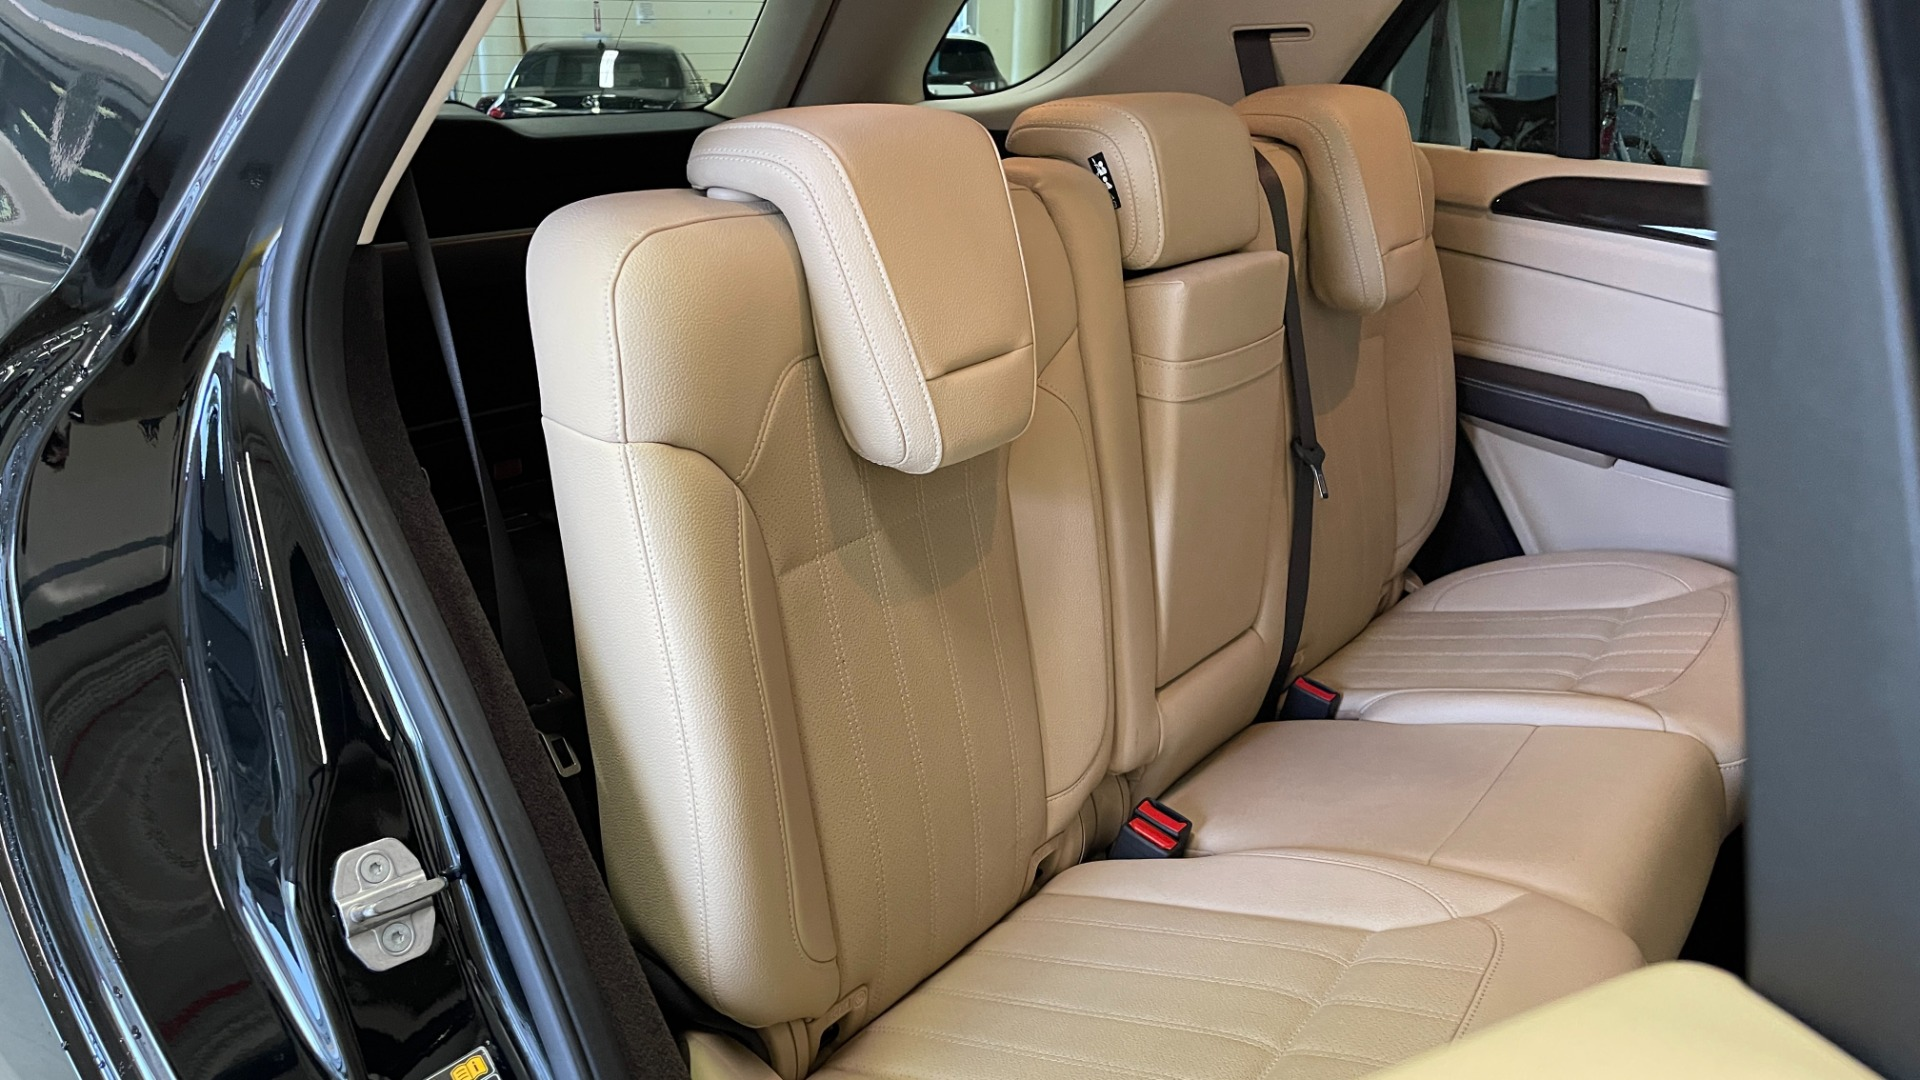 Used 2018 Mercedes-Benz GLE 350 4MATIC PREMIUM / NAV / PARK PILOT / BSA / H/K SND / SURROUND VIEW for sale $40,995 at Formula Imports in Charlotte NC 28227 56